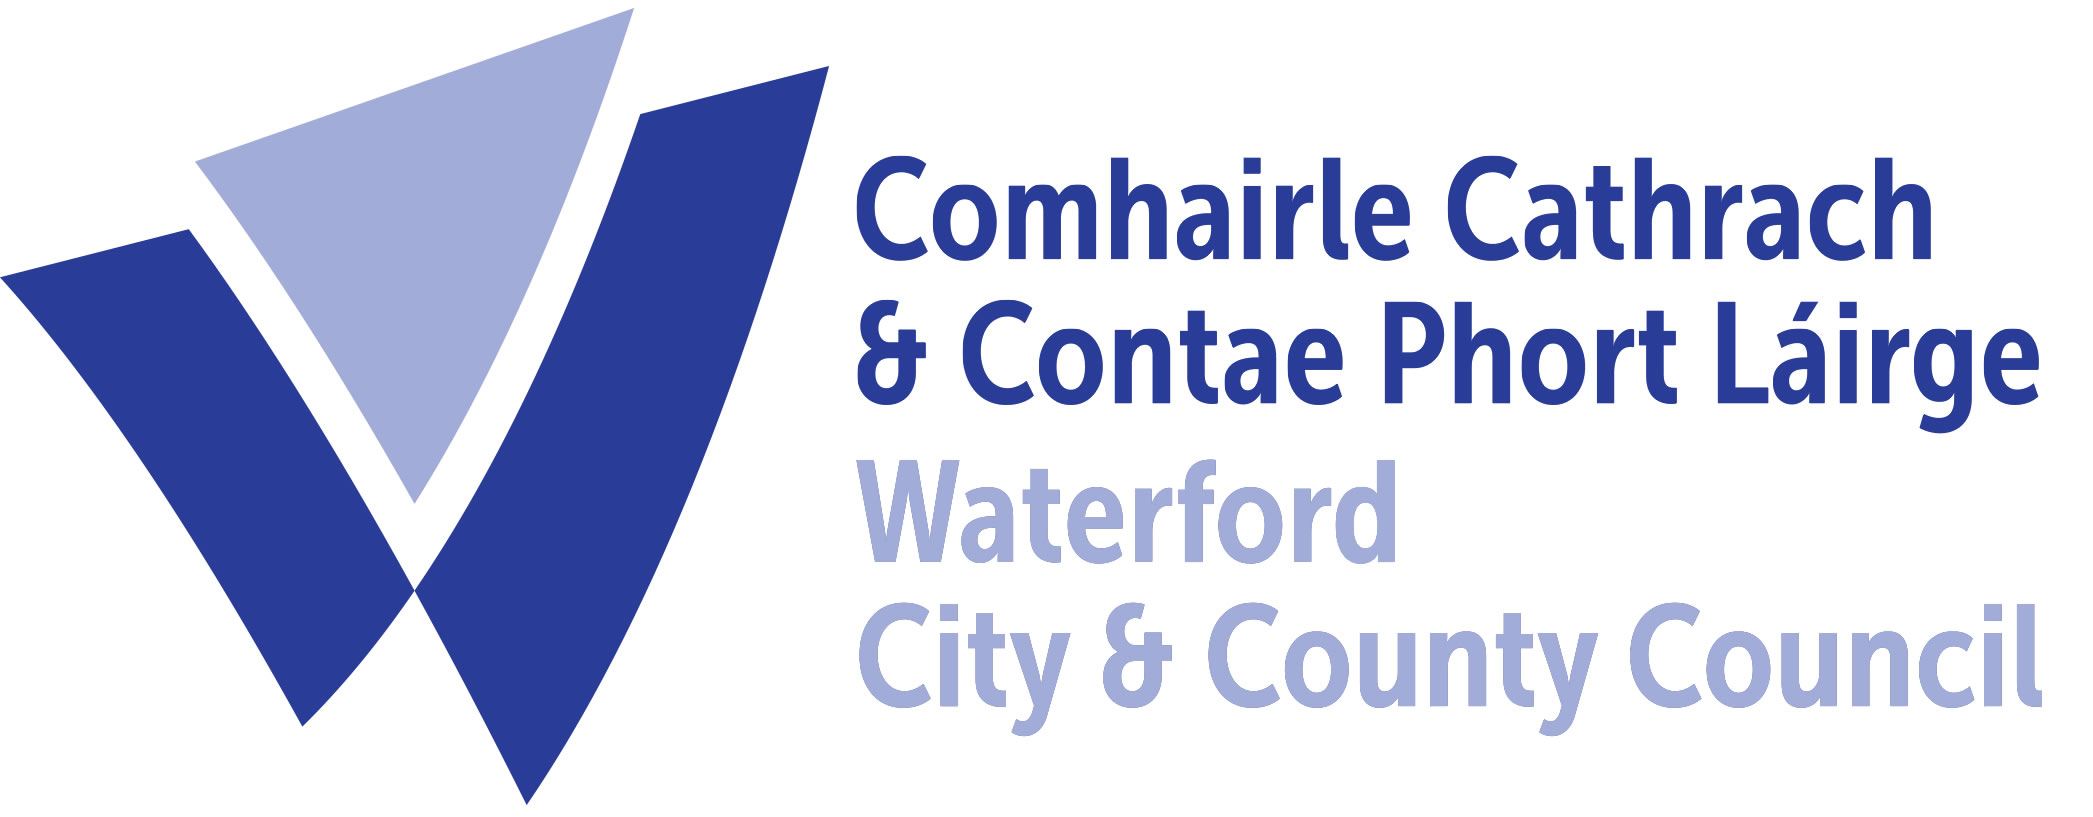 Waterford City Council